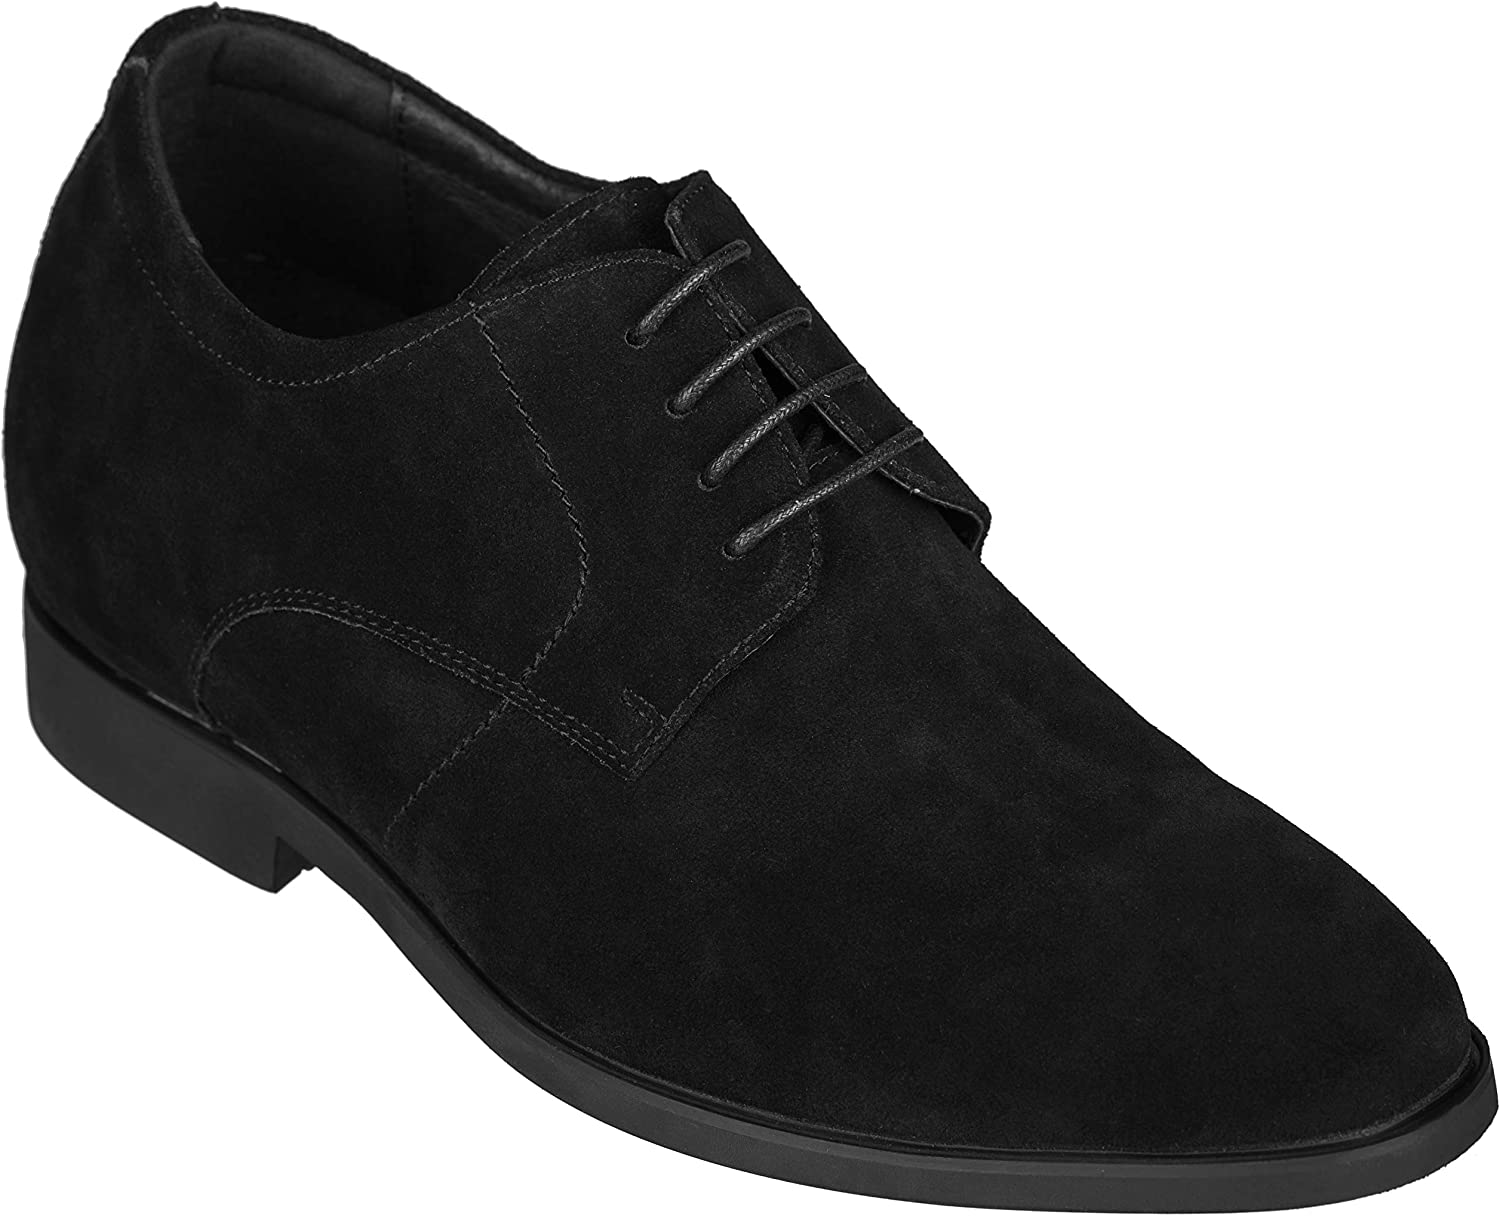 CALTO Men's Invisible Height Increasing Elevator Shoes - Black Nubuck Leather Lace-up Dress Oxfords - 3 Inches Taller - Y31251